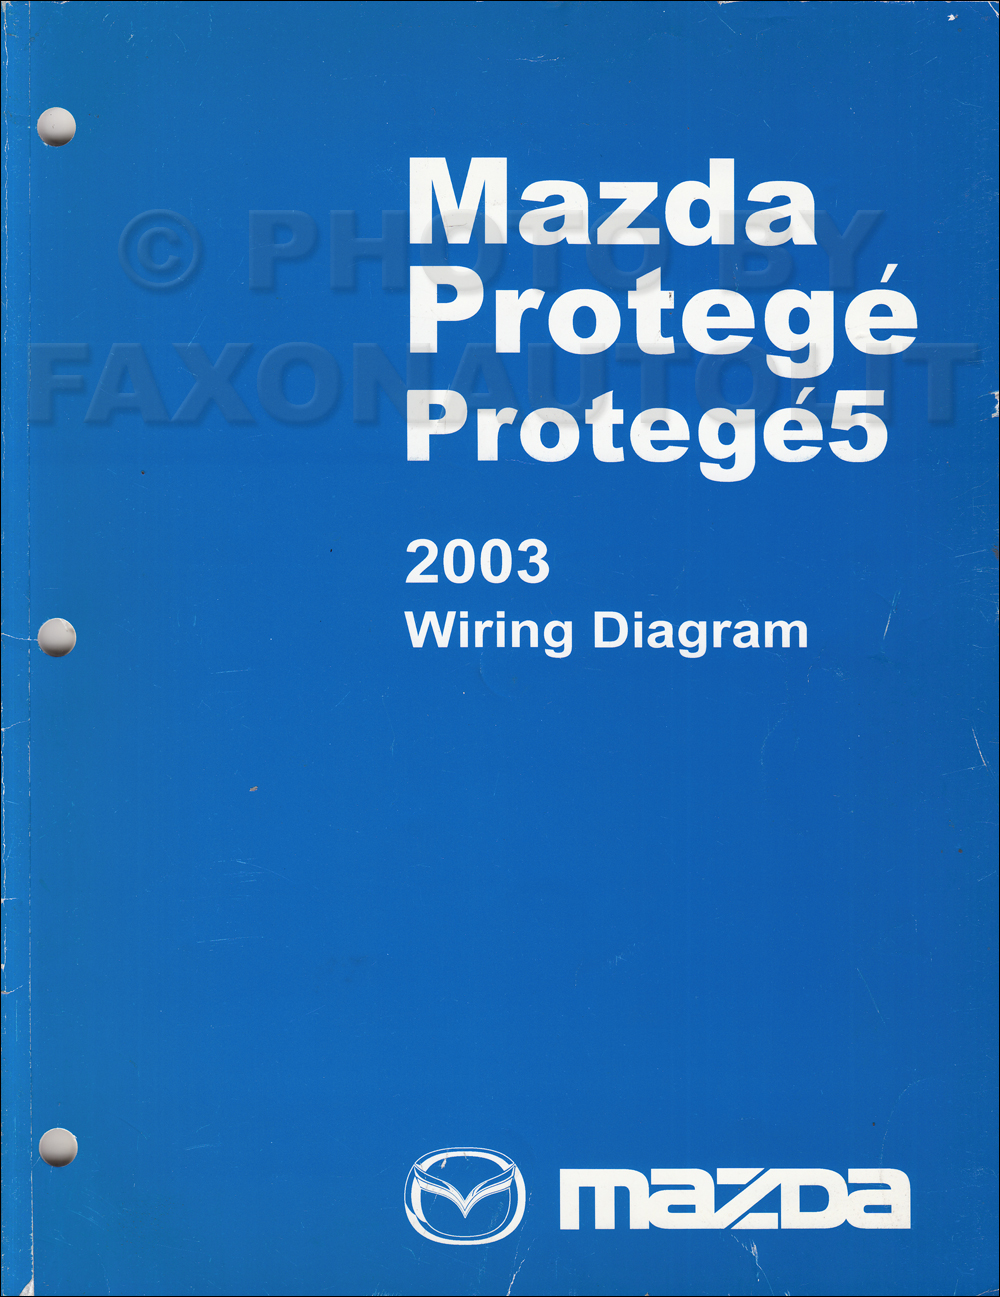 Mazda Protege Wiring Diagram Reinvent Your 1997 Mx6 Schematic 2003 And Protege5 Manual Original Rh Faxonautoliterature Com Electrical